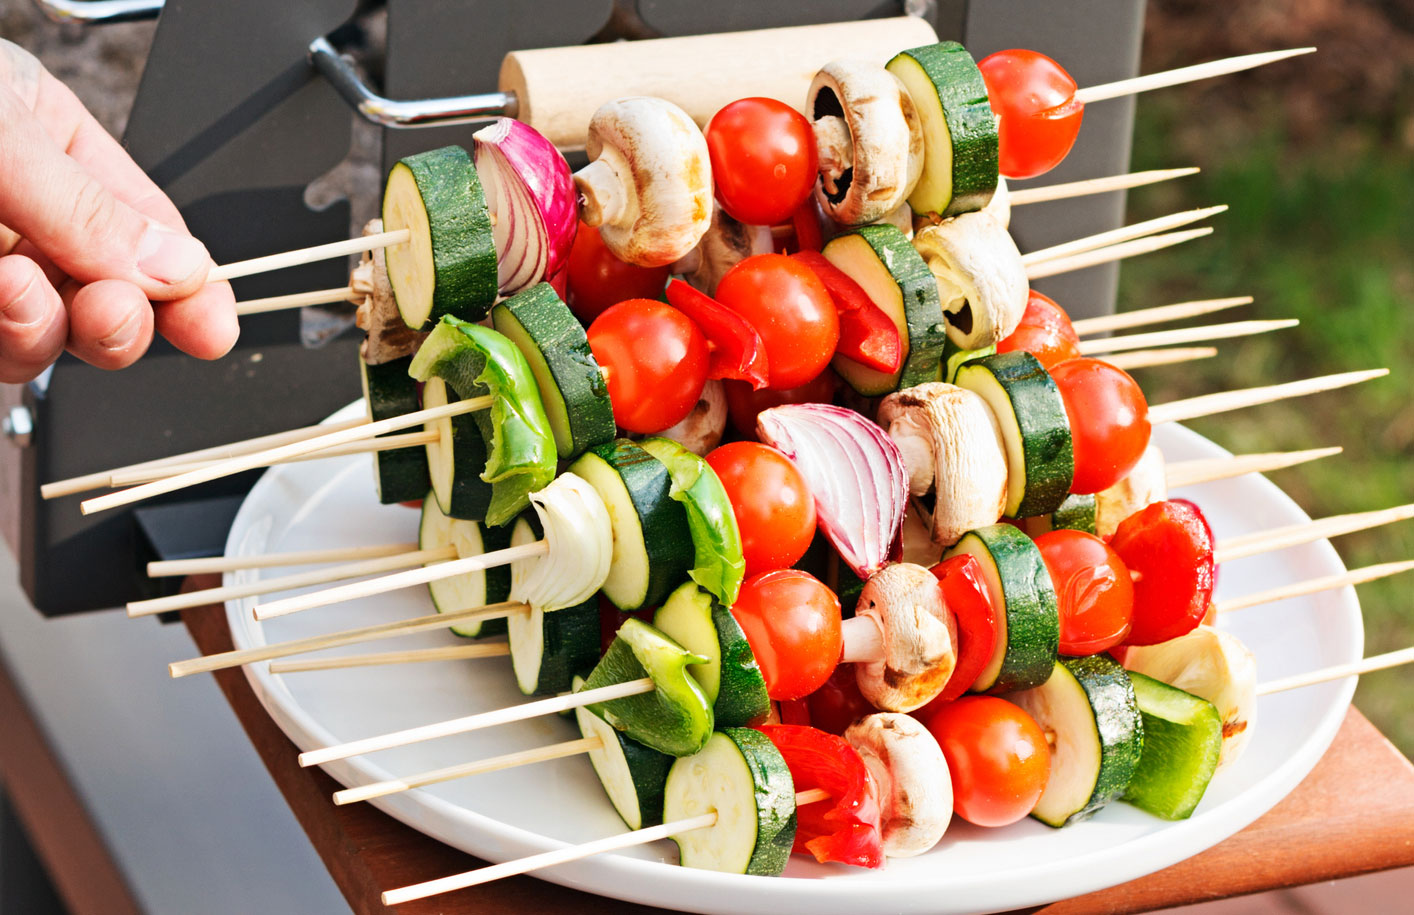 Grilled veggie kebabs on a plate.